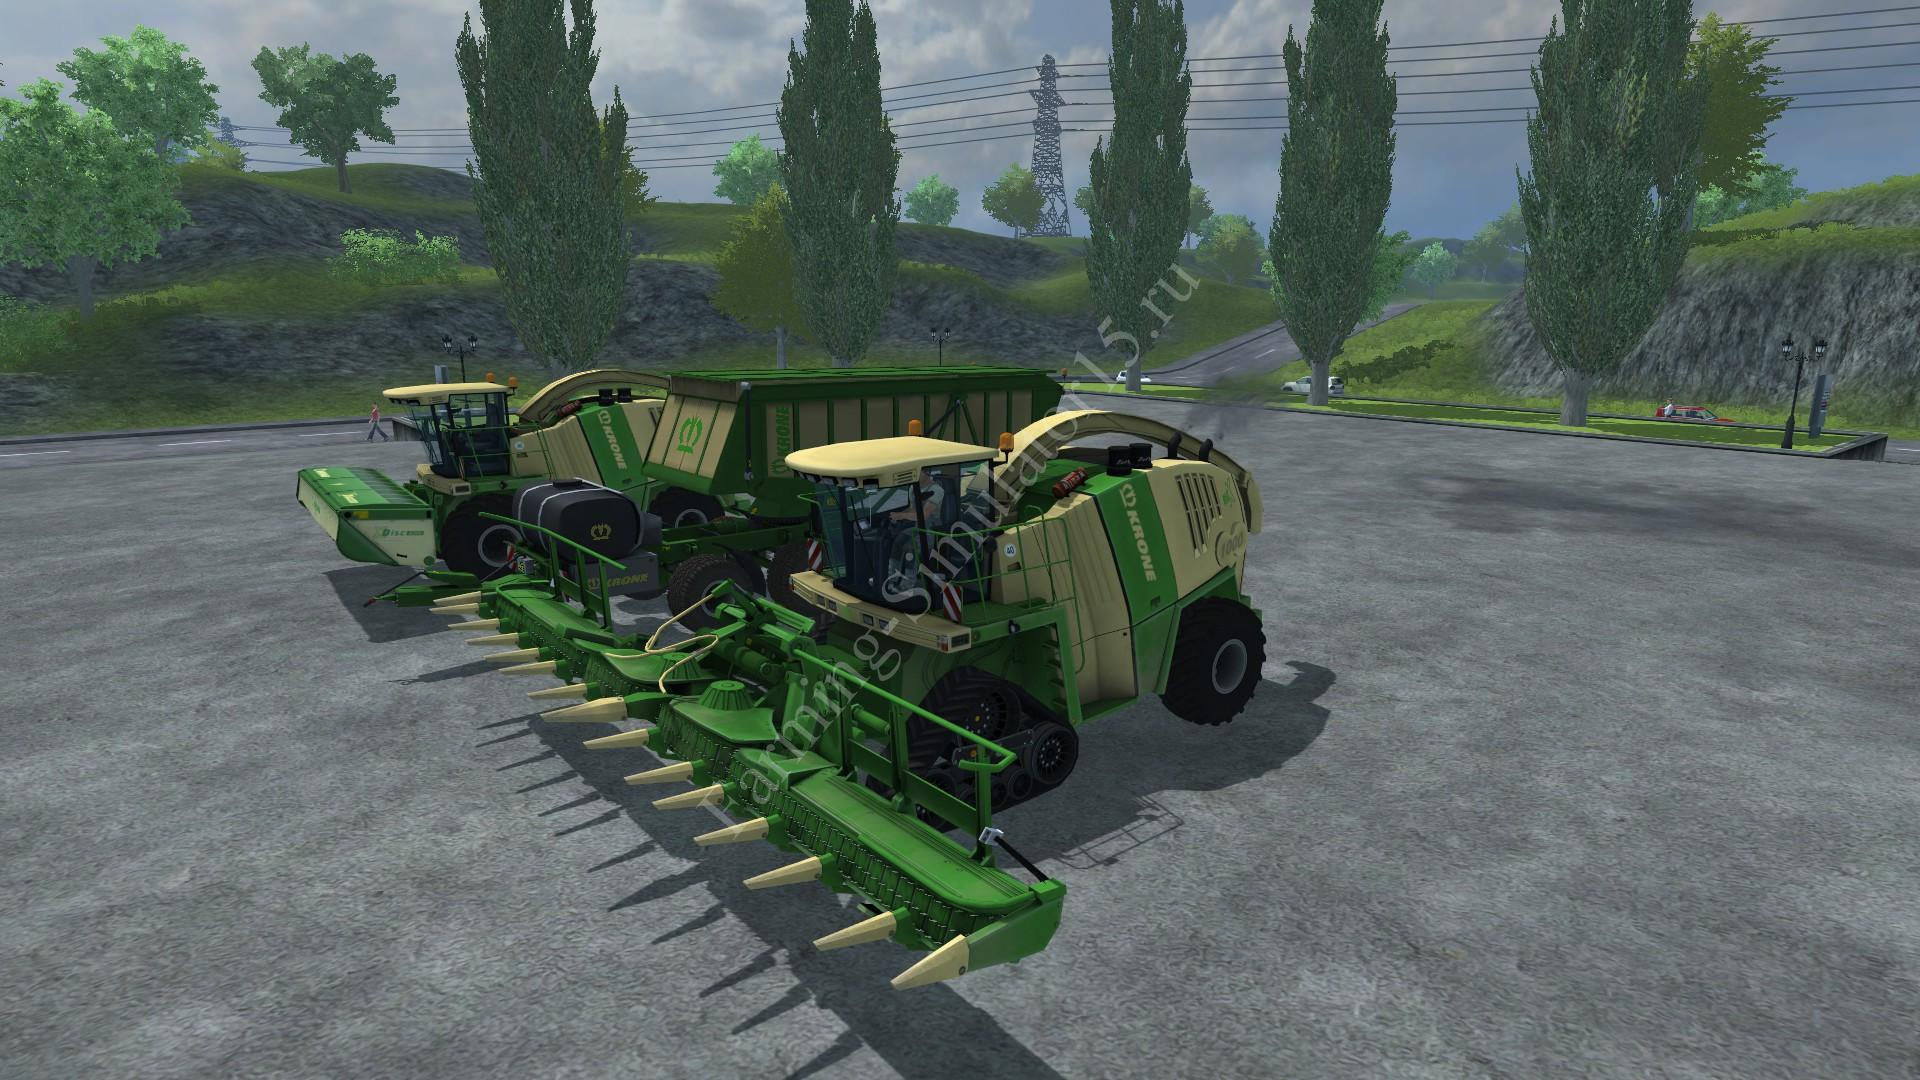 Мод комбайна Krone Big X 1000 Pack v 1.0 Farming Simulator 2013, Farming Simulator 13